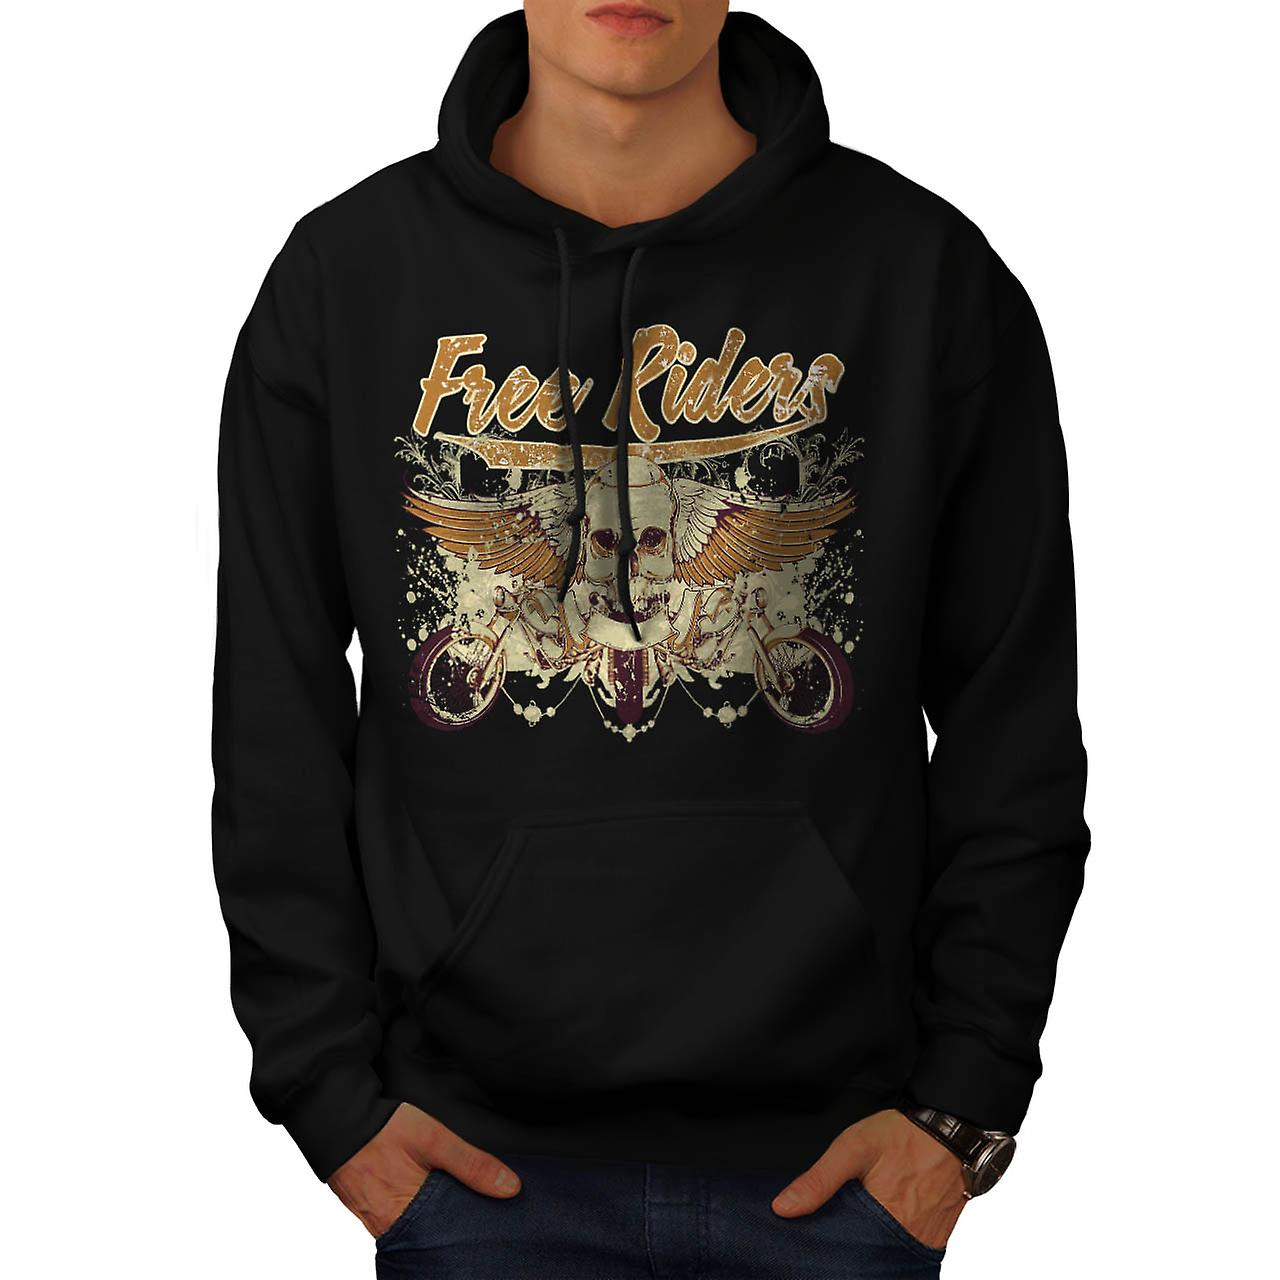 Free Rider Bike Gang Biker Life Men Black Hoodie | Wellcoda